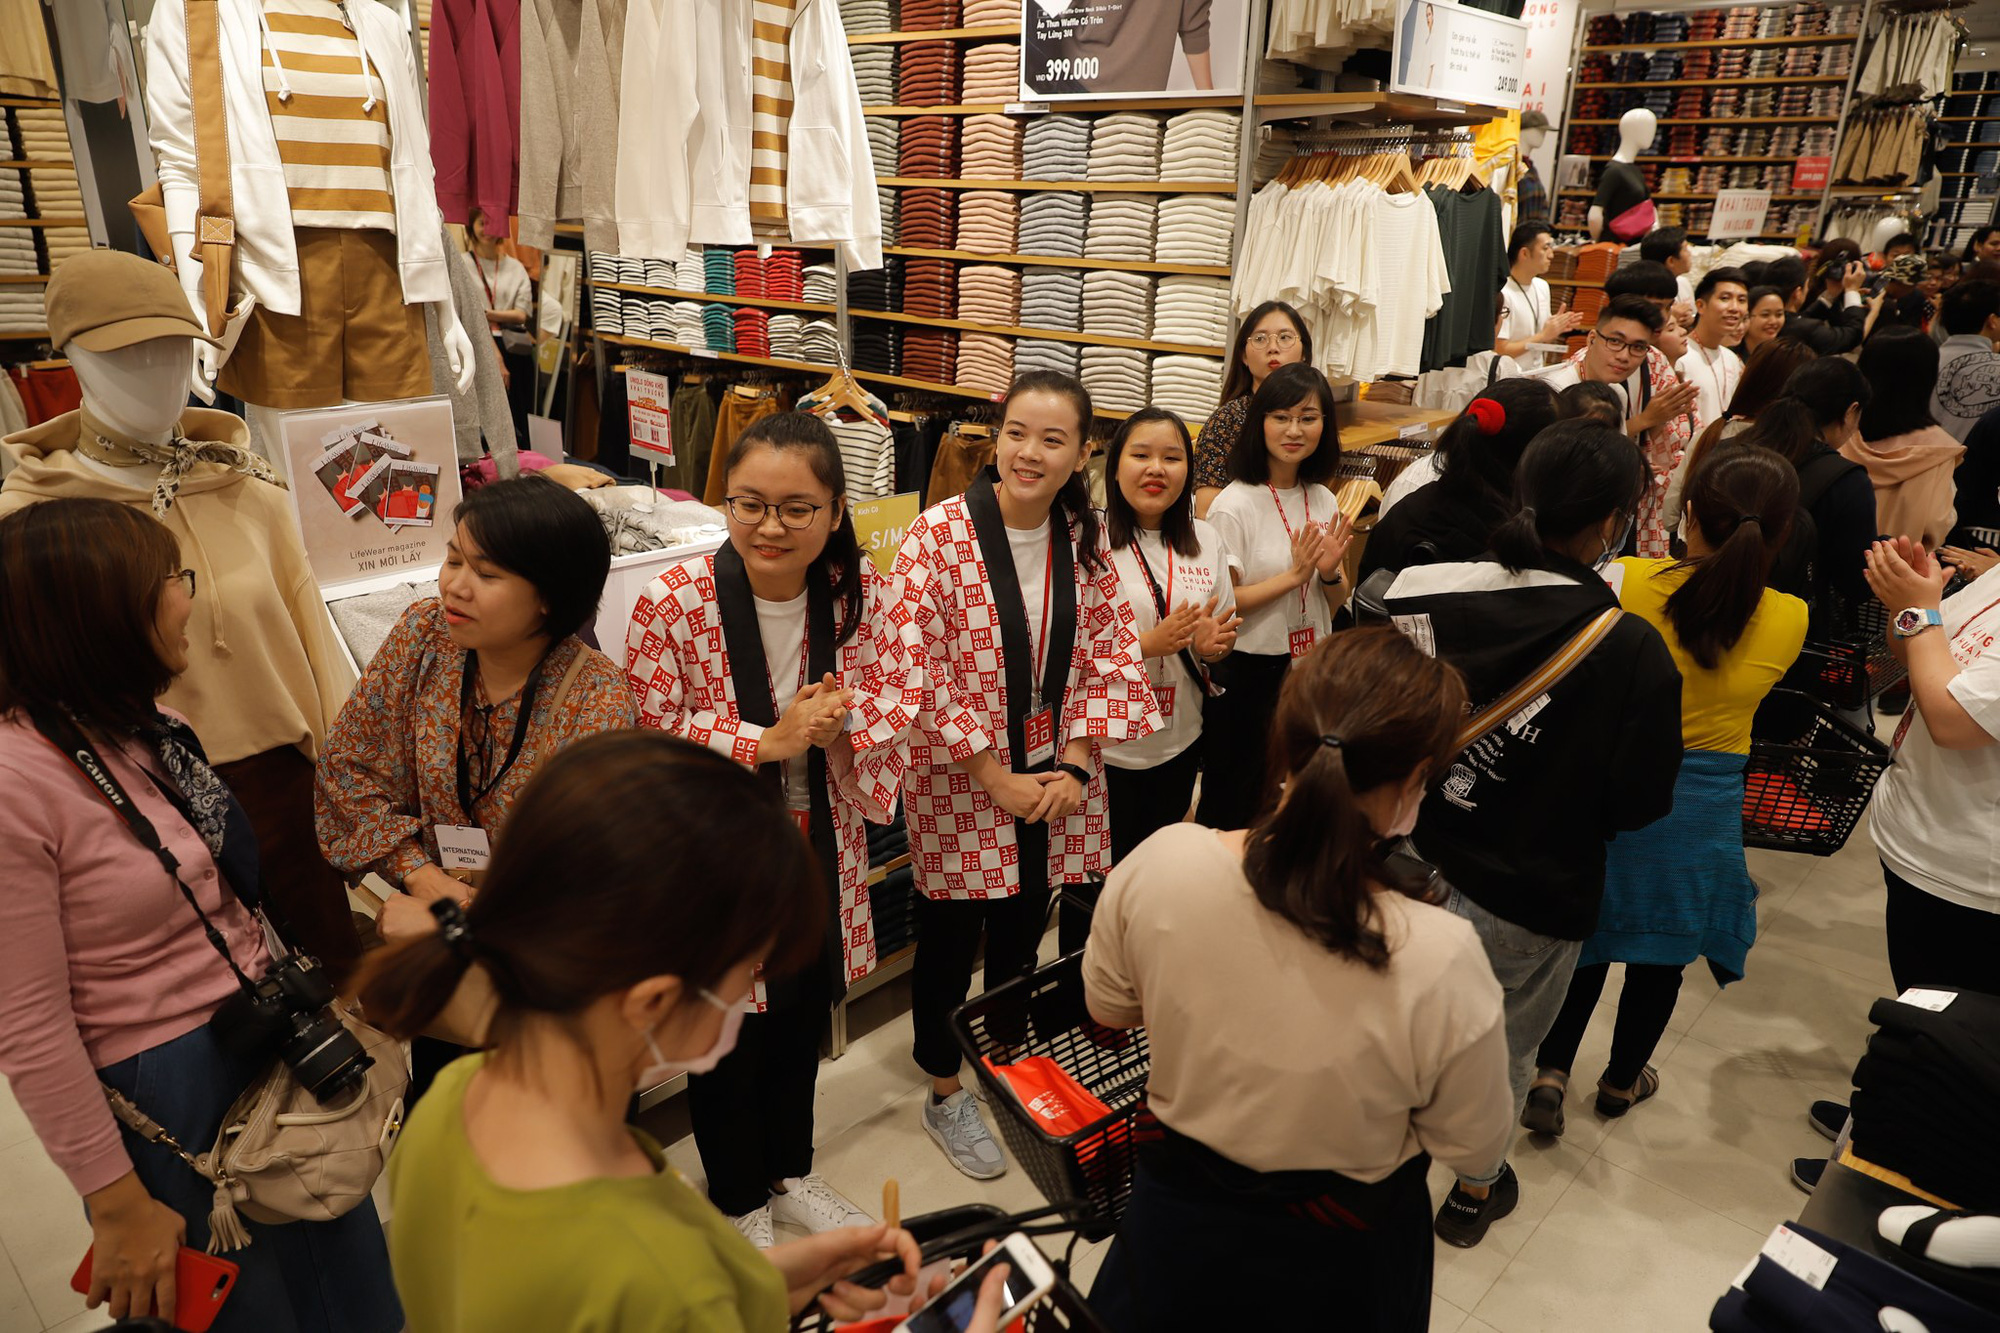 Employees hand shopping baskets to customers inside the store. Photo: Nguyen Tri / Tuoi Tre